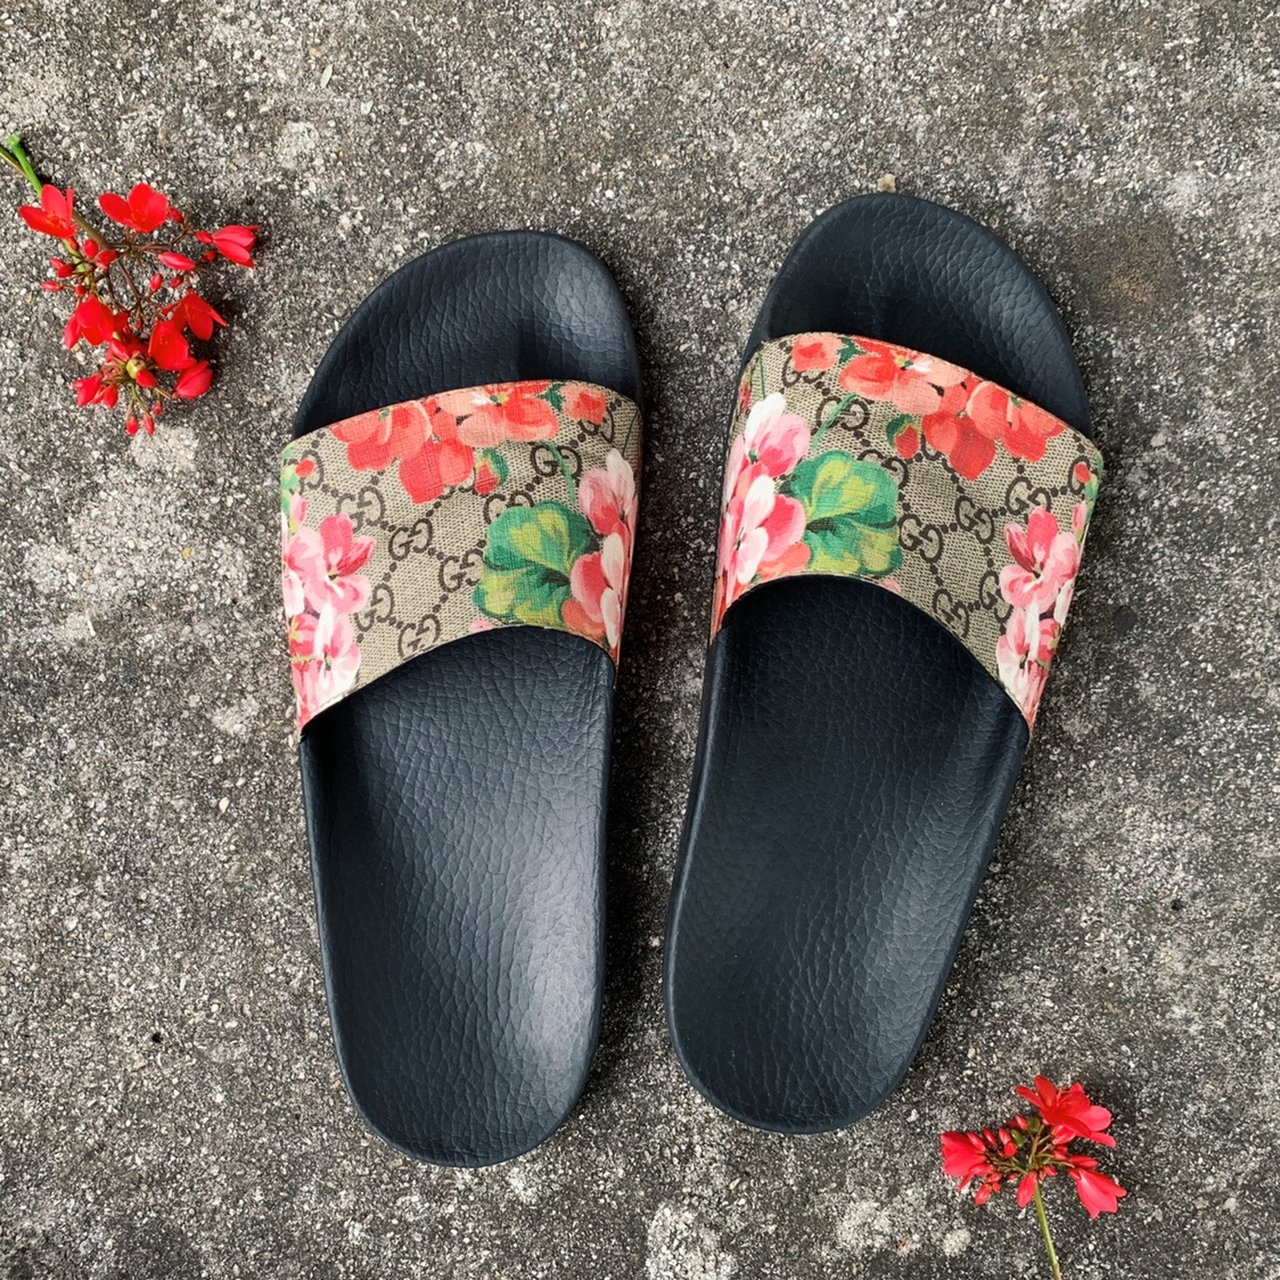 Authentic GG Blooms Supreme slide